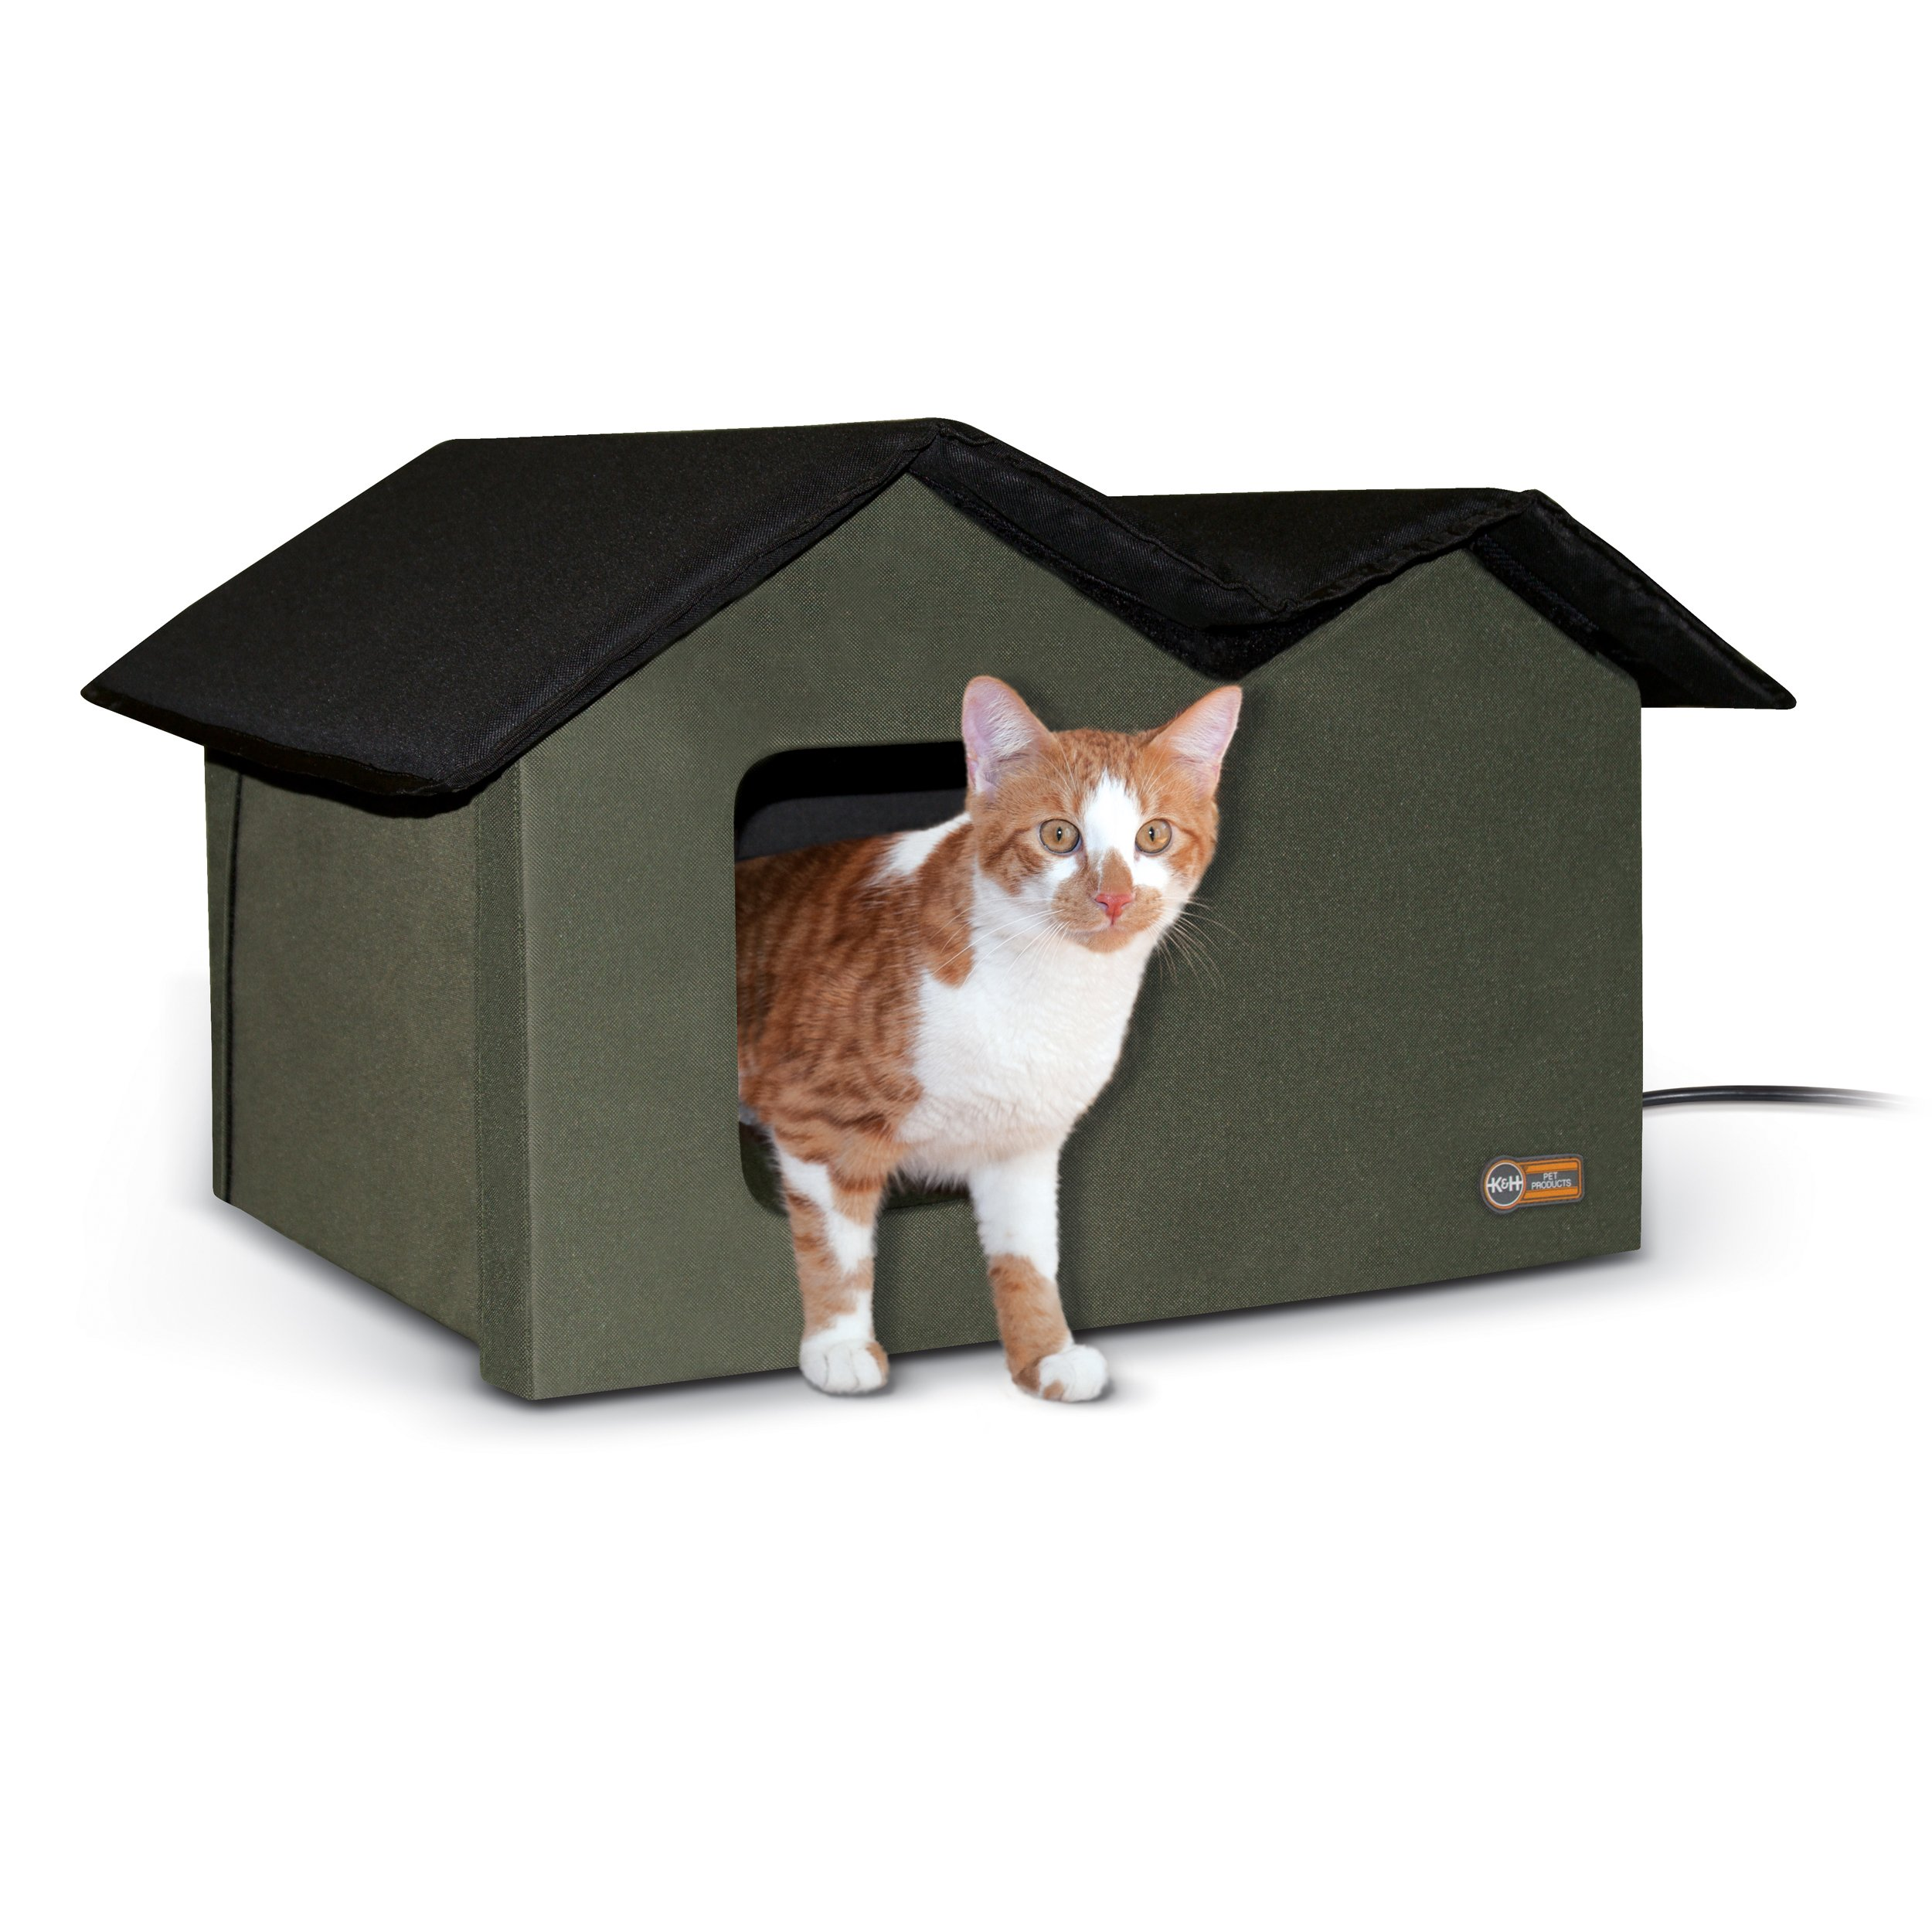 K&H Pet Products Extra-Wide Outdoor Kitty House, 26.5″ x 15.5″ x 21.5″